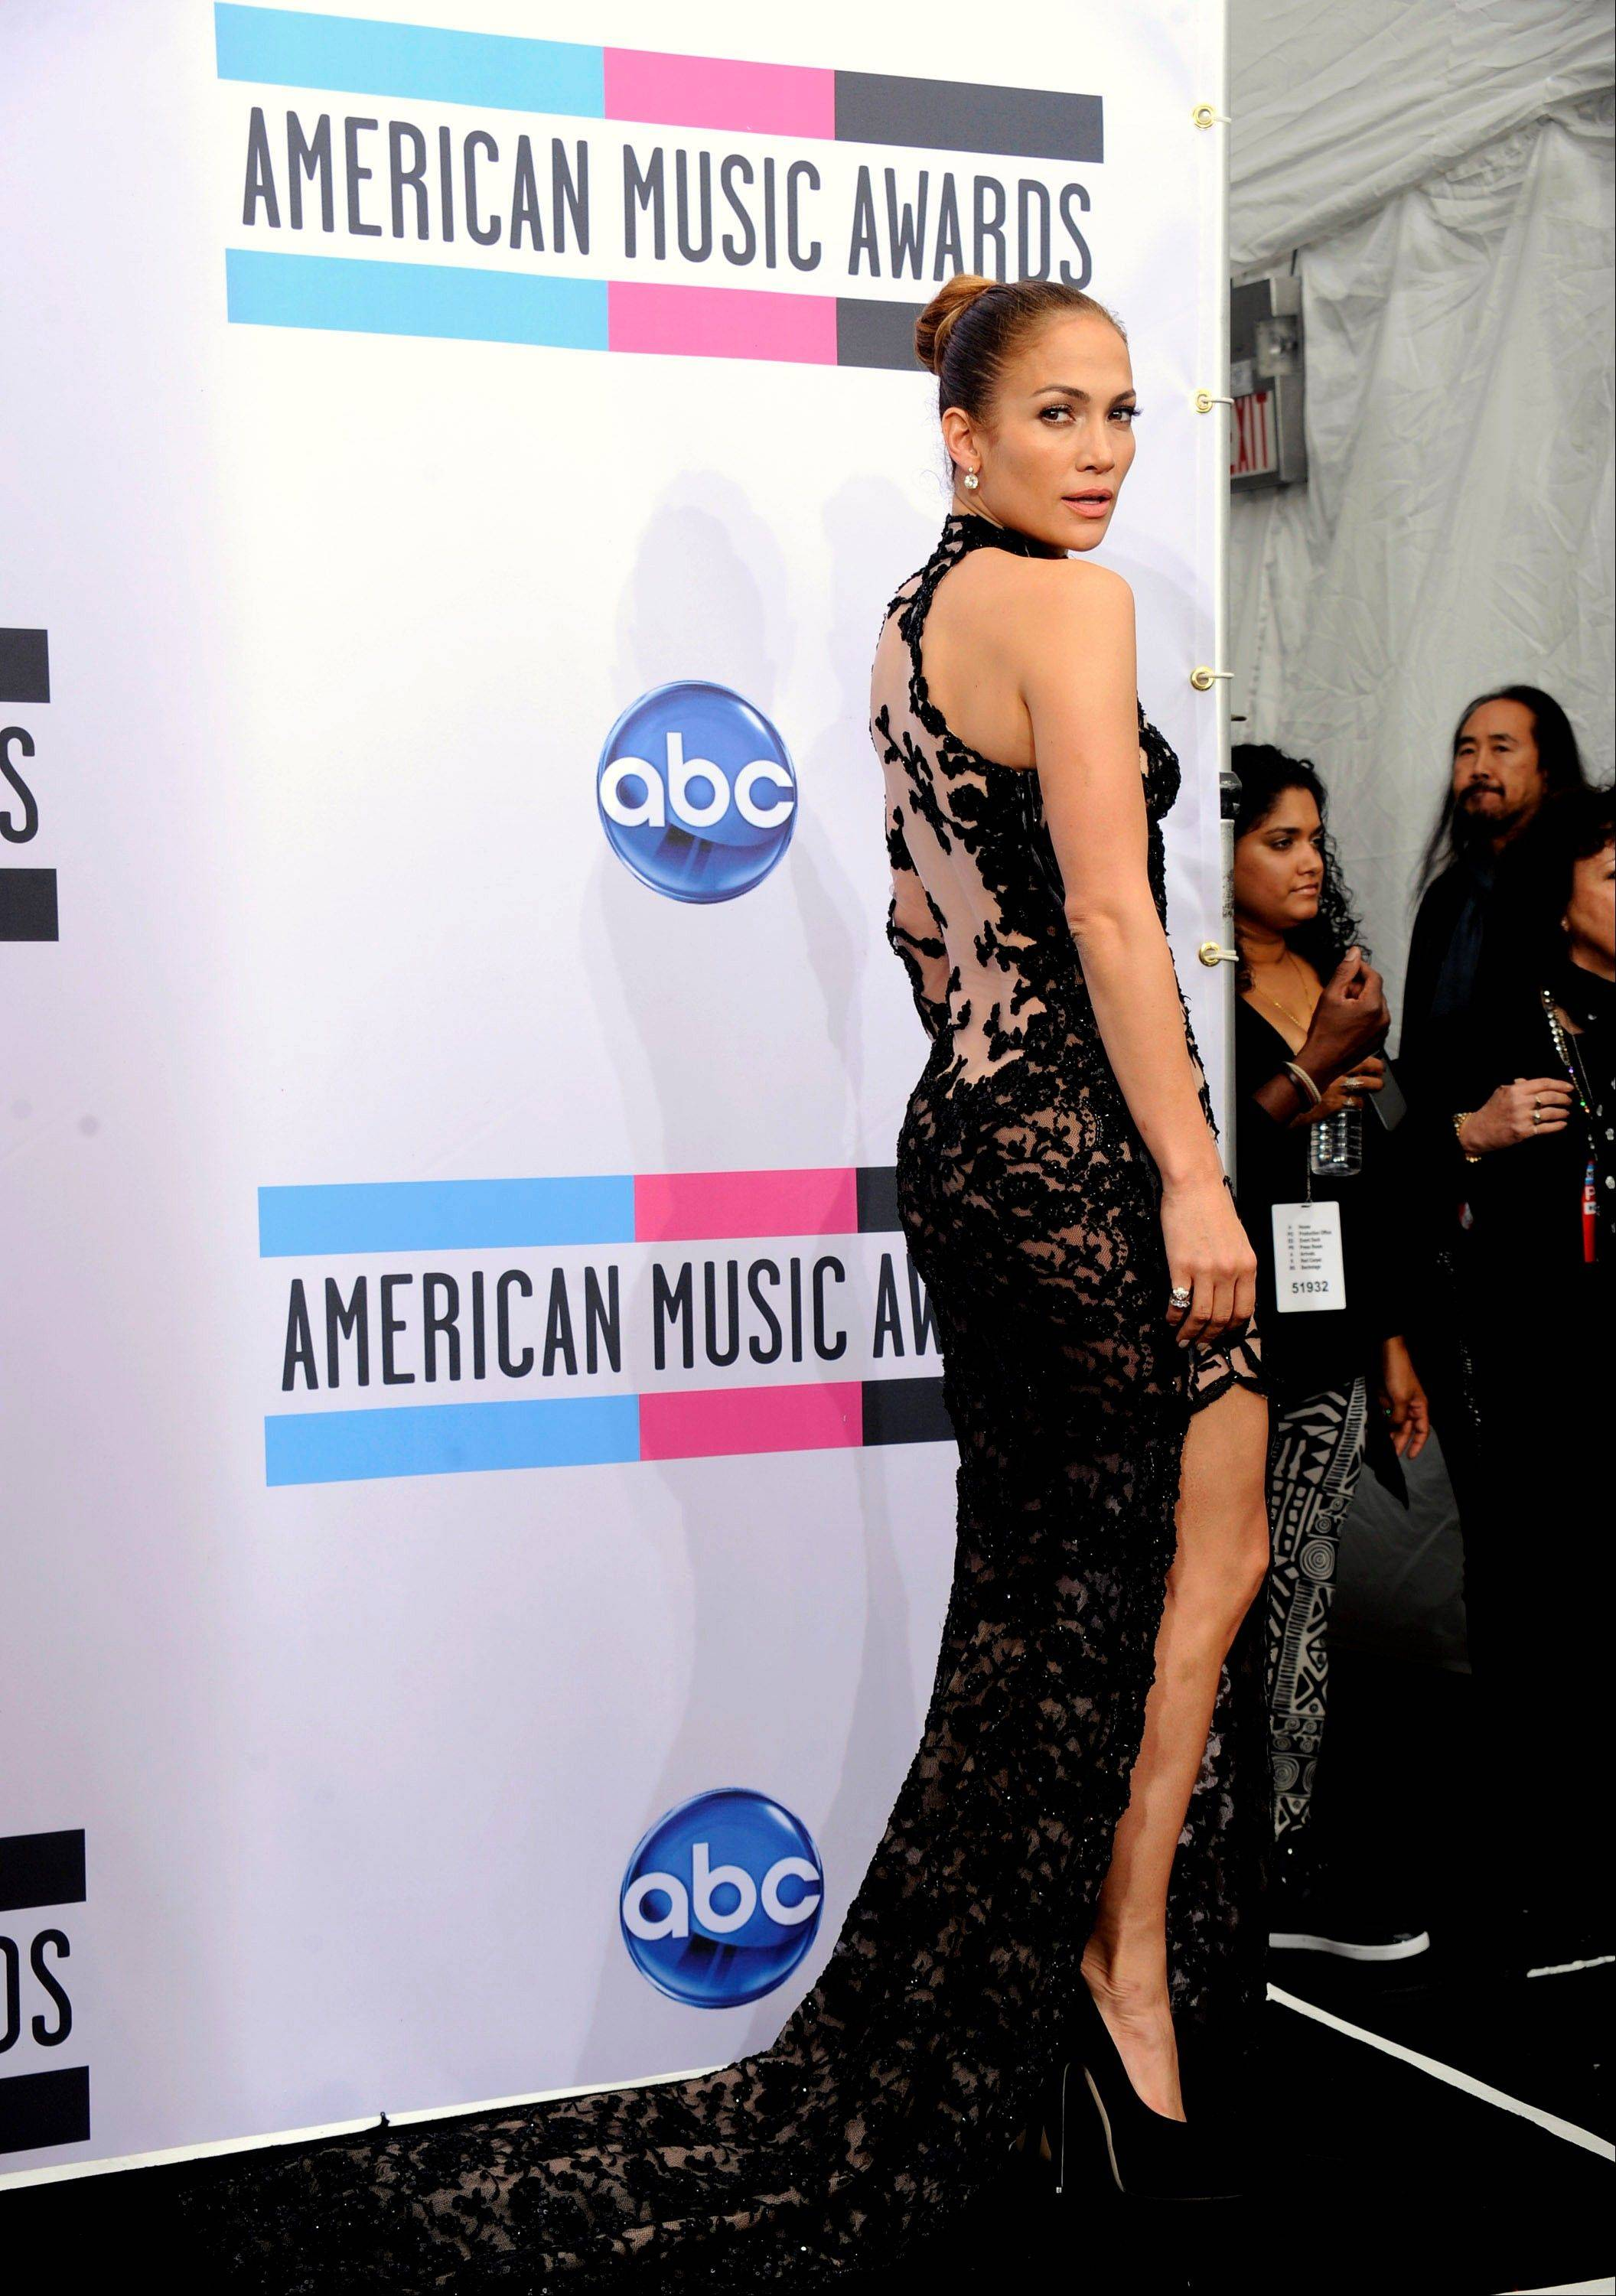 Jennifer Lopez poses backstage at the 39th Annual American Music Awards on Sunday, Nov. 20, 2011 in Los Angeles. (AP Photo/Chris Pizzello)